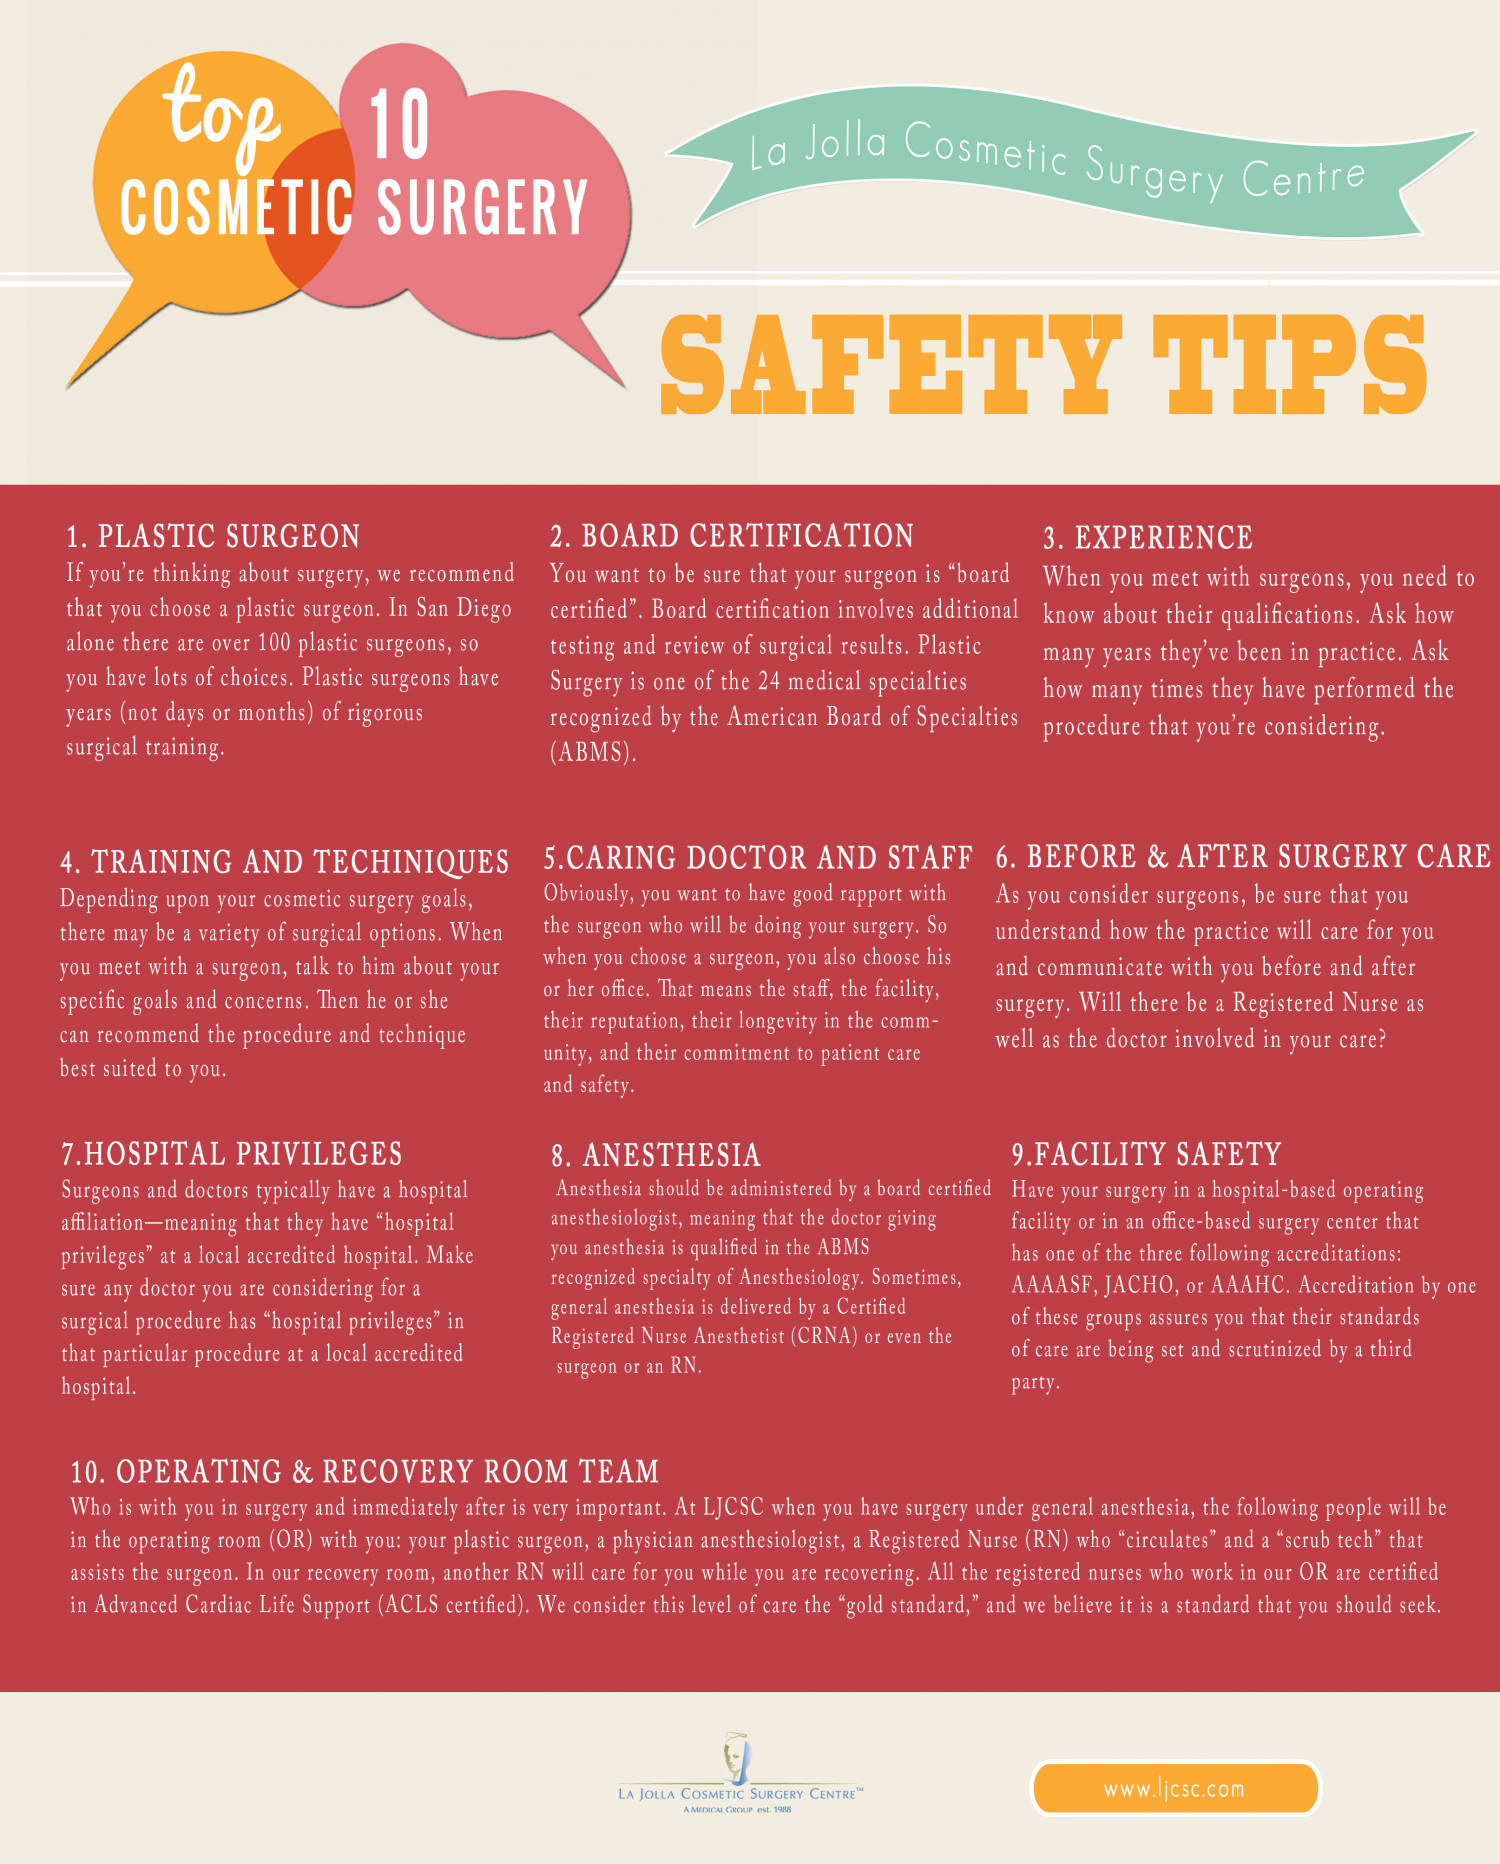 Top 10 Cosmetic Surgery Safety Tips Infographic